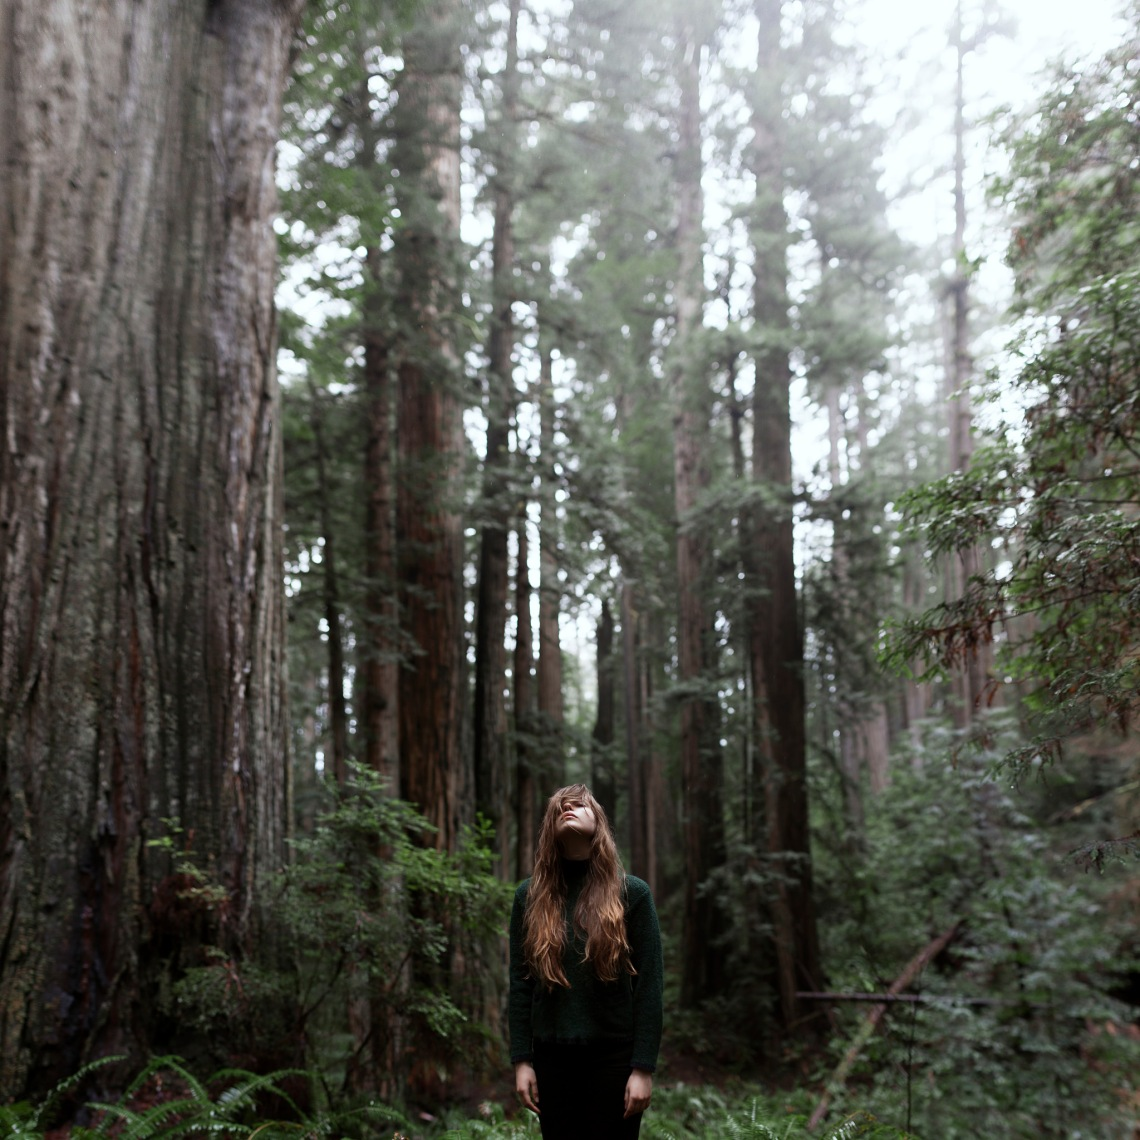 Blending into the forest, nature, camping, solitude, solo adventures, thinking, reflecting, one with the trees of the forest